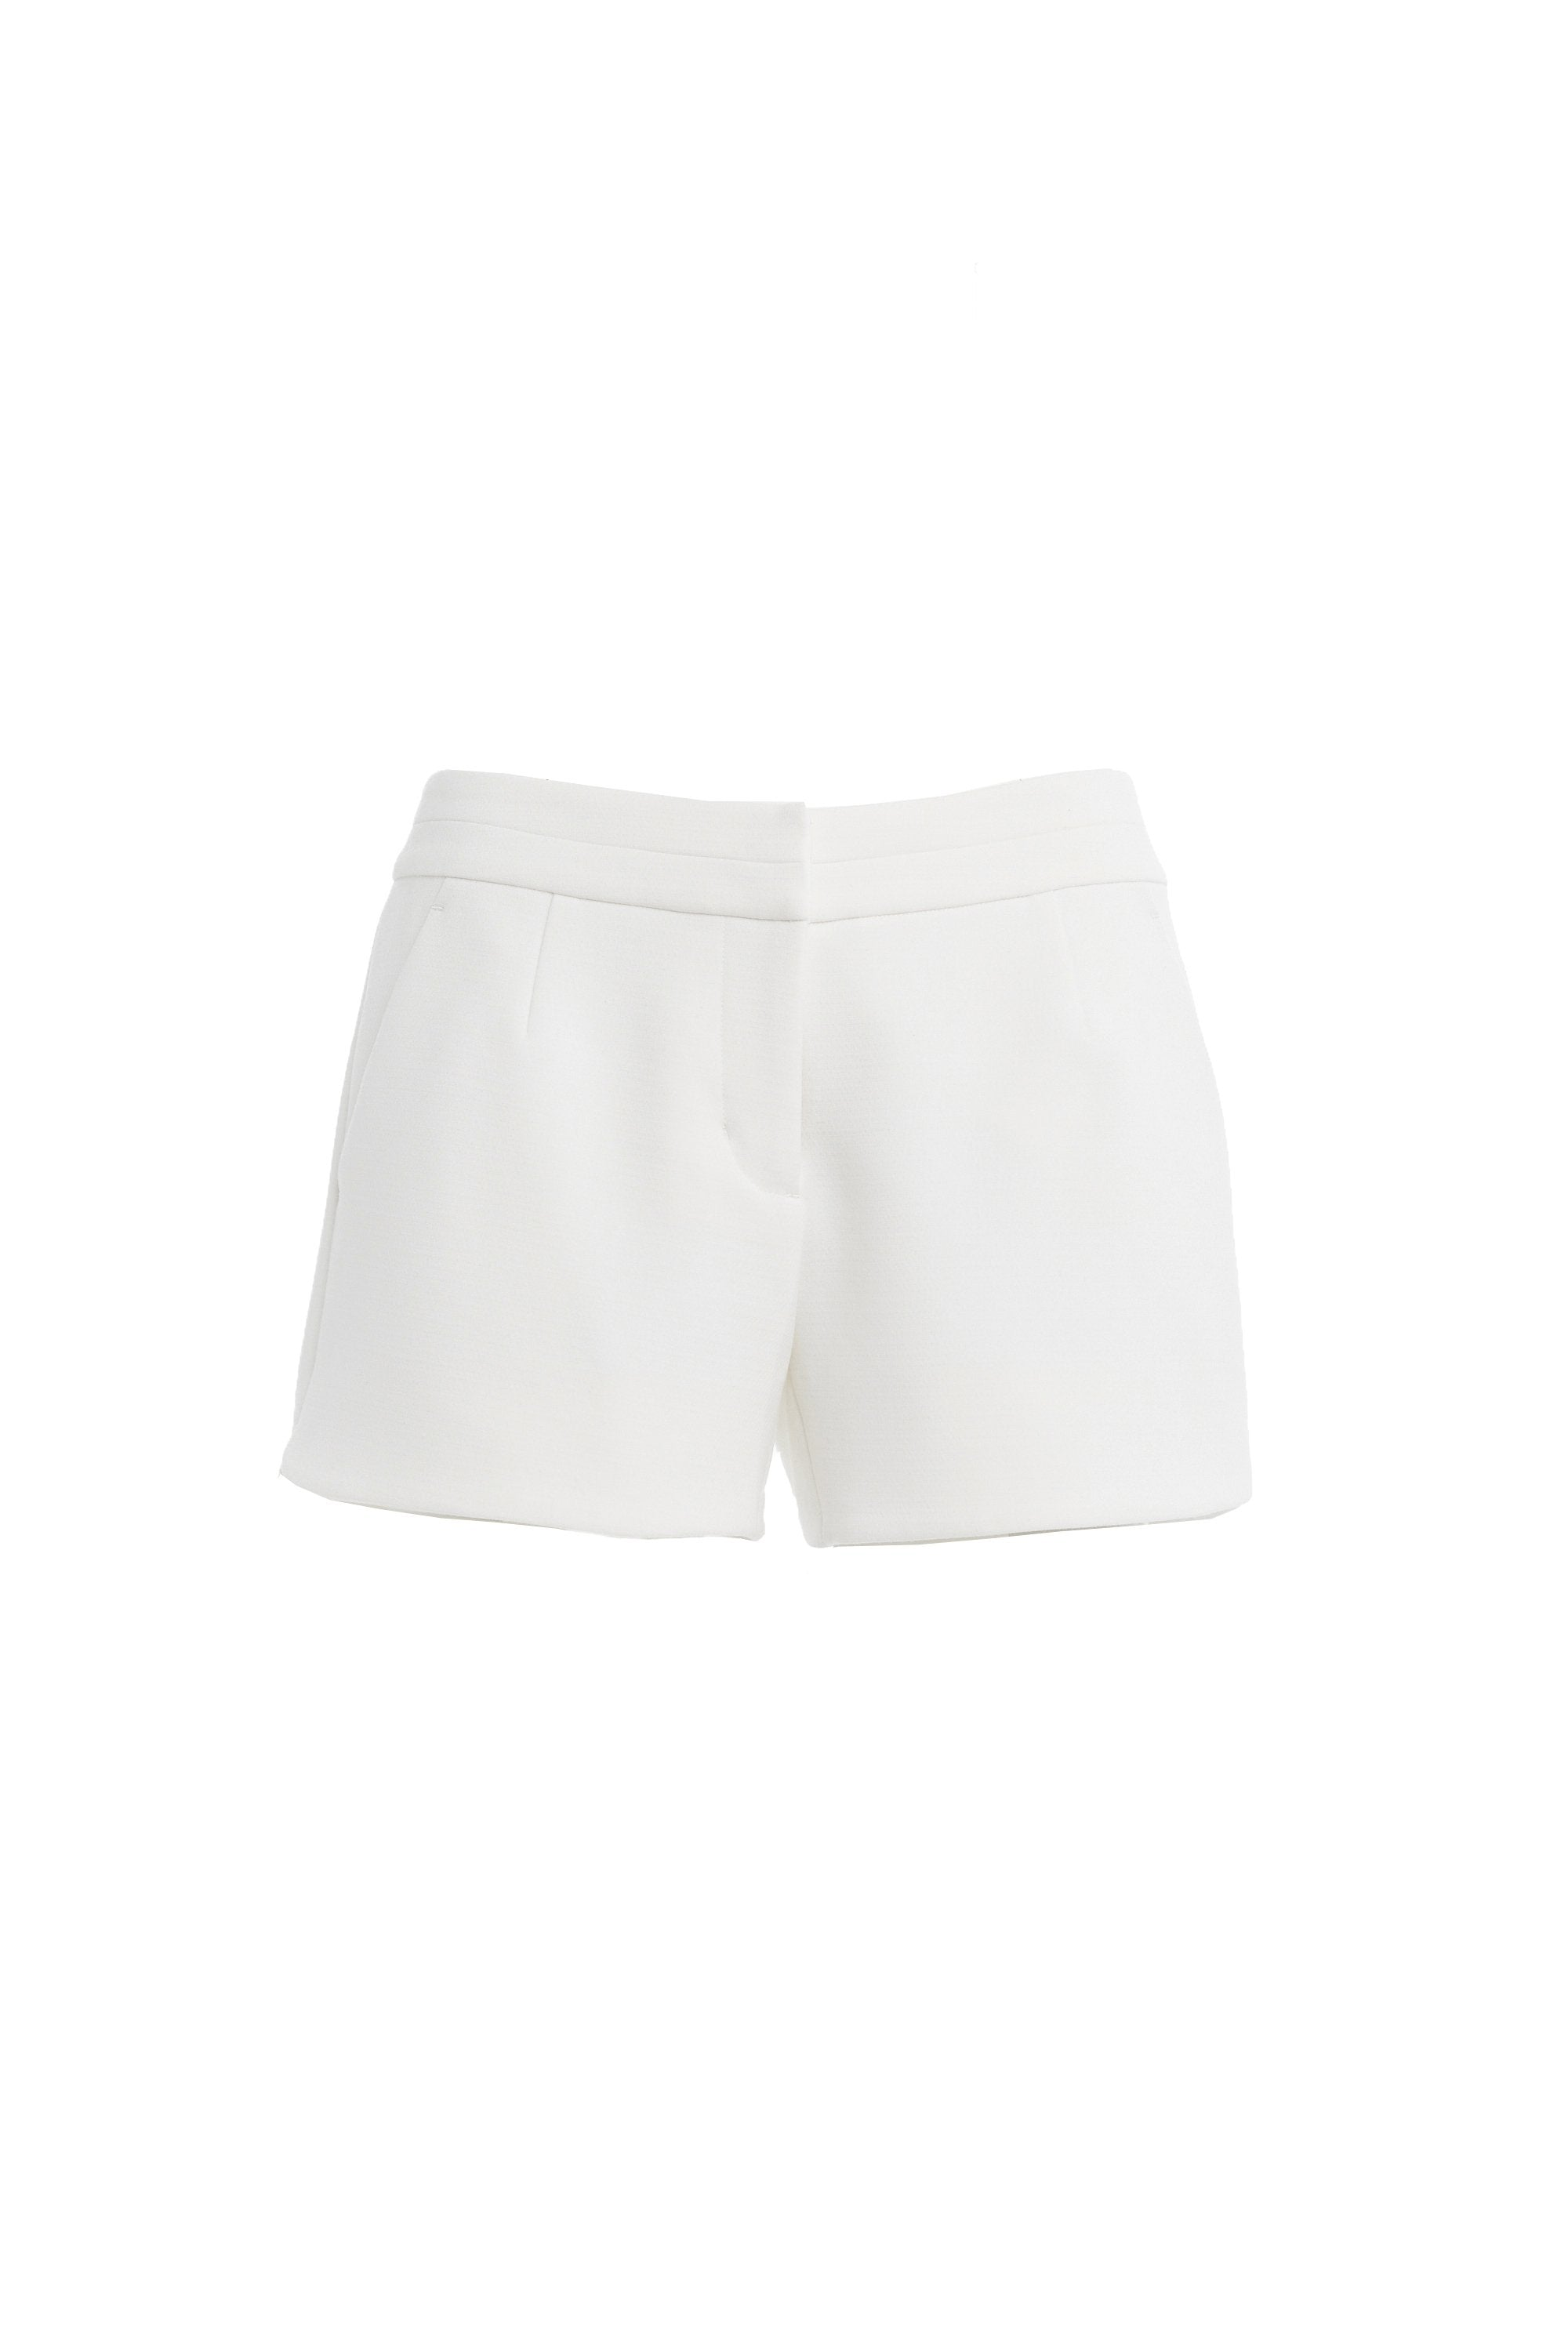 Murray Short in White Shorts Crosby by Mollie Burch